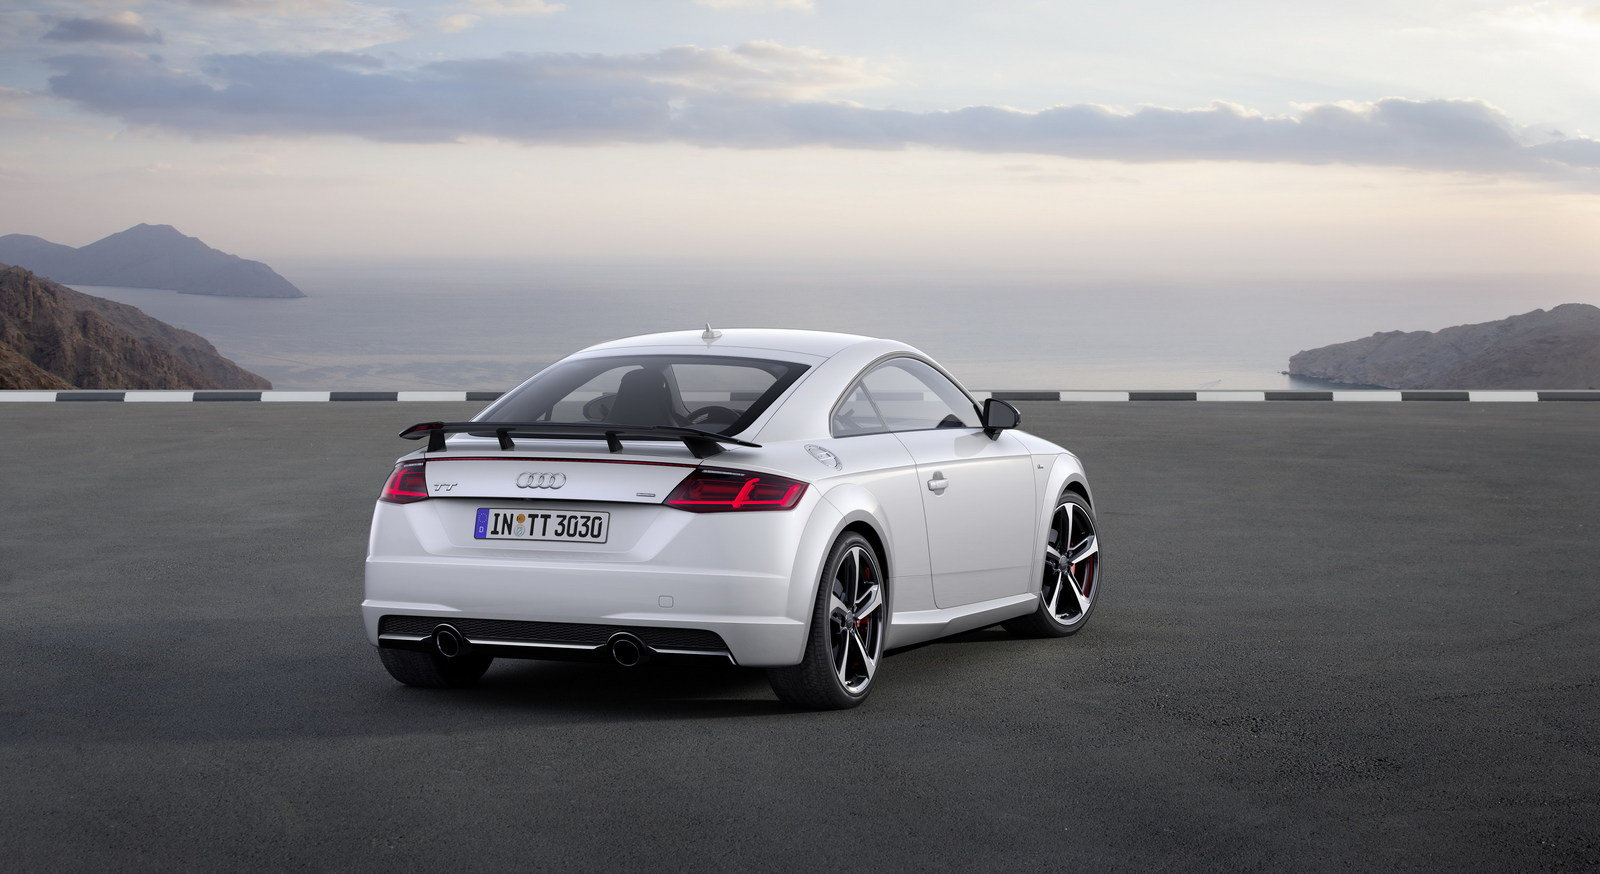 2017 audi tt s line competition picture 689165 car review top speed. Black Bedroom Furniture Sets. Home Design Ideas